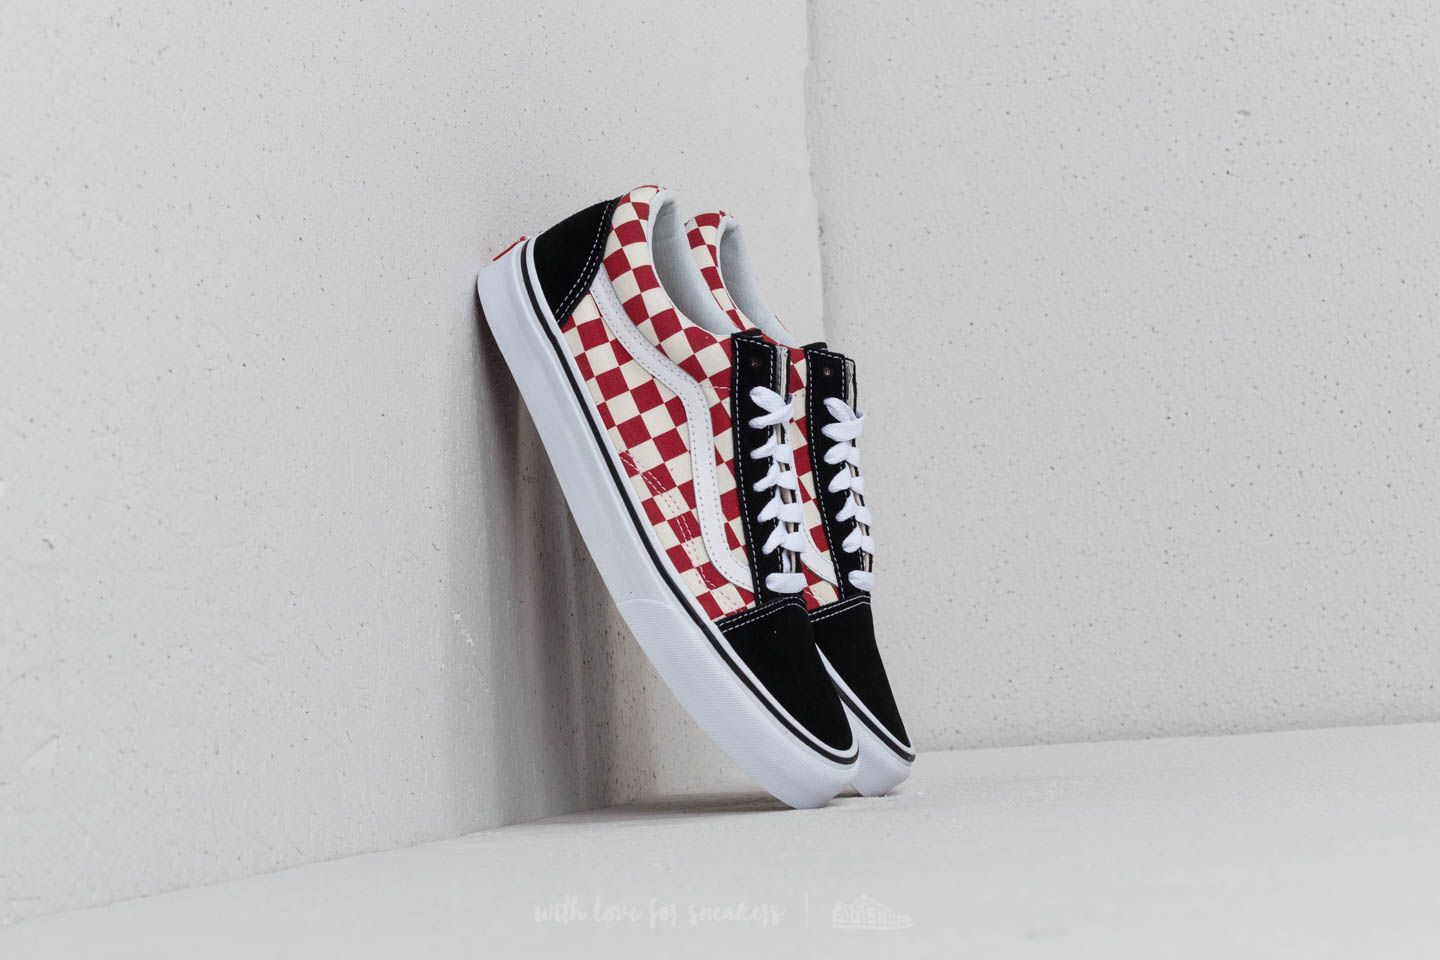 b972fcfb23 Vans Old Skool (Checkerboard) Black  Red